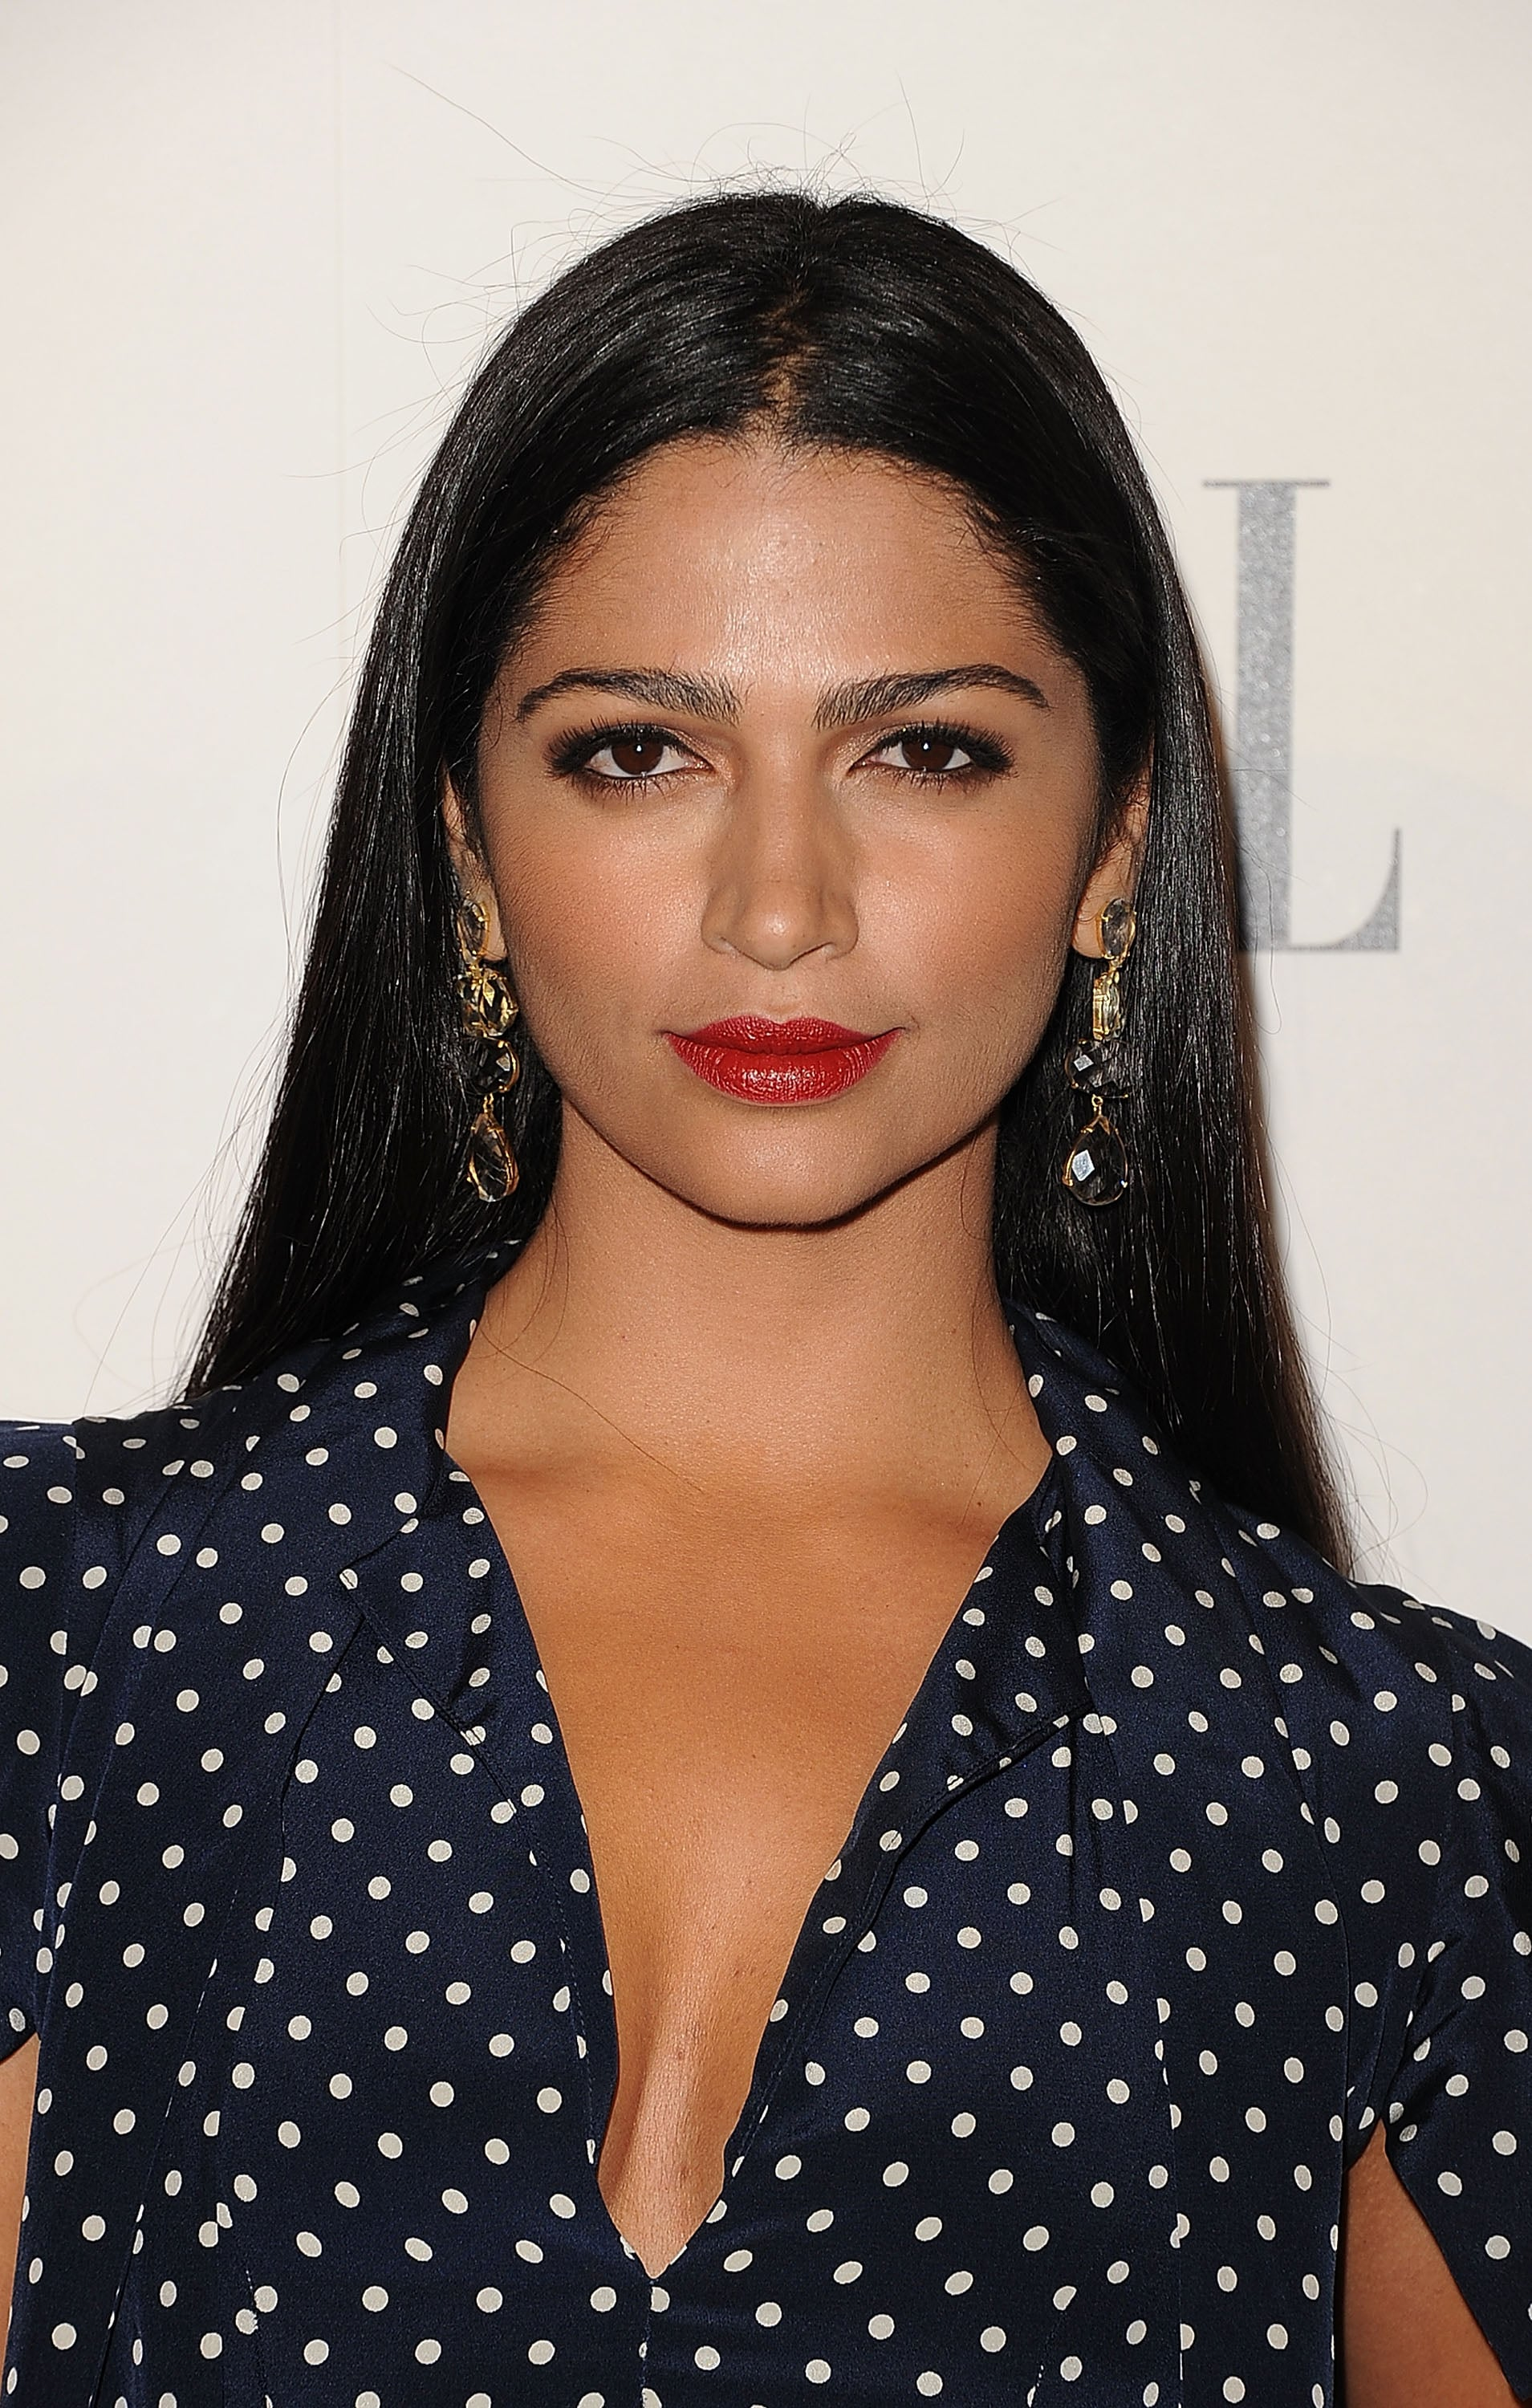 Camila Alves in a polka-dot dress.